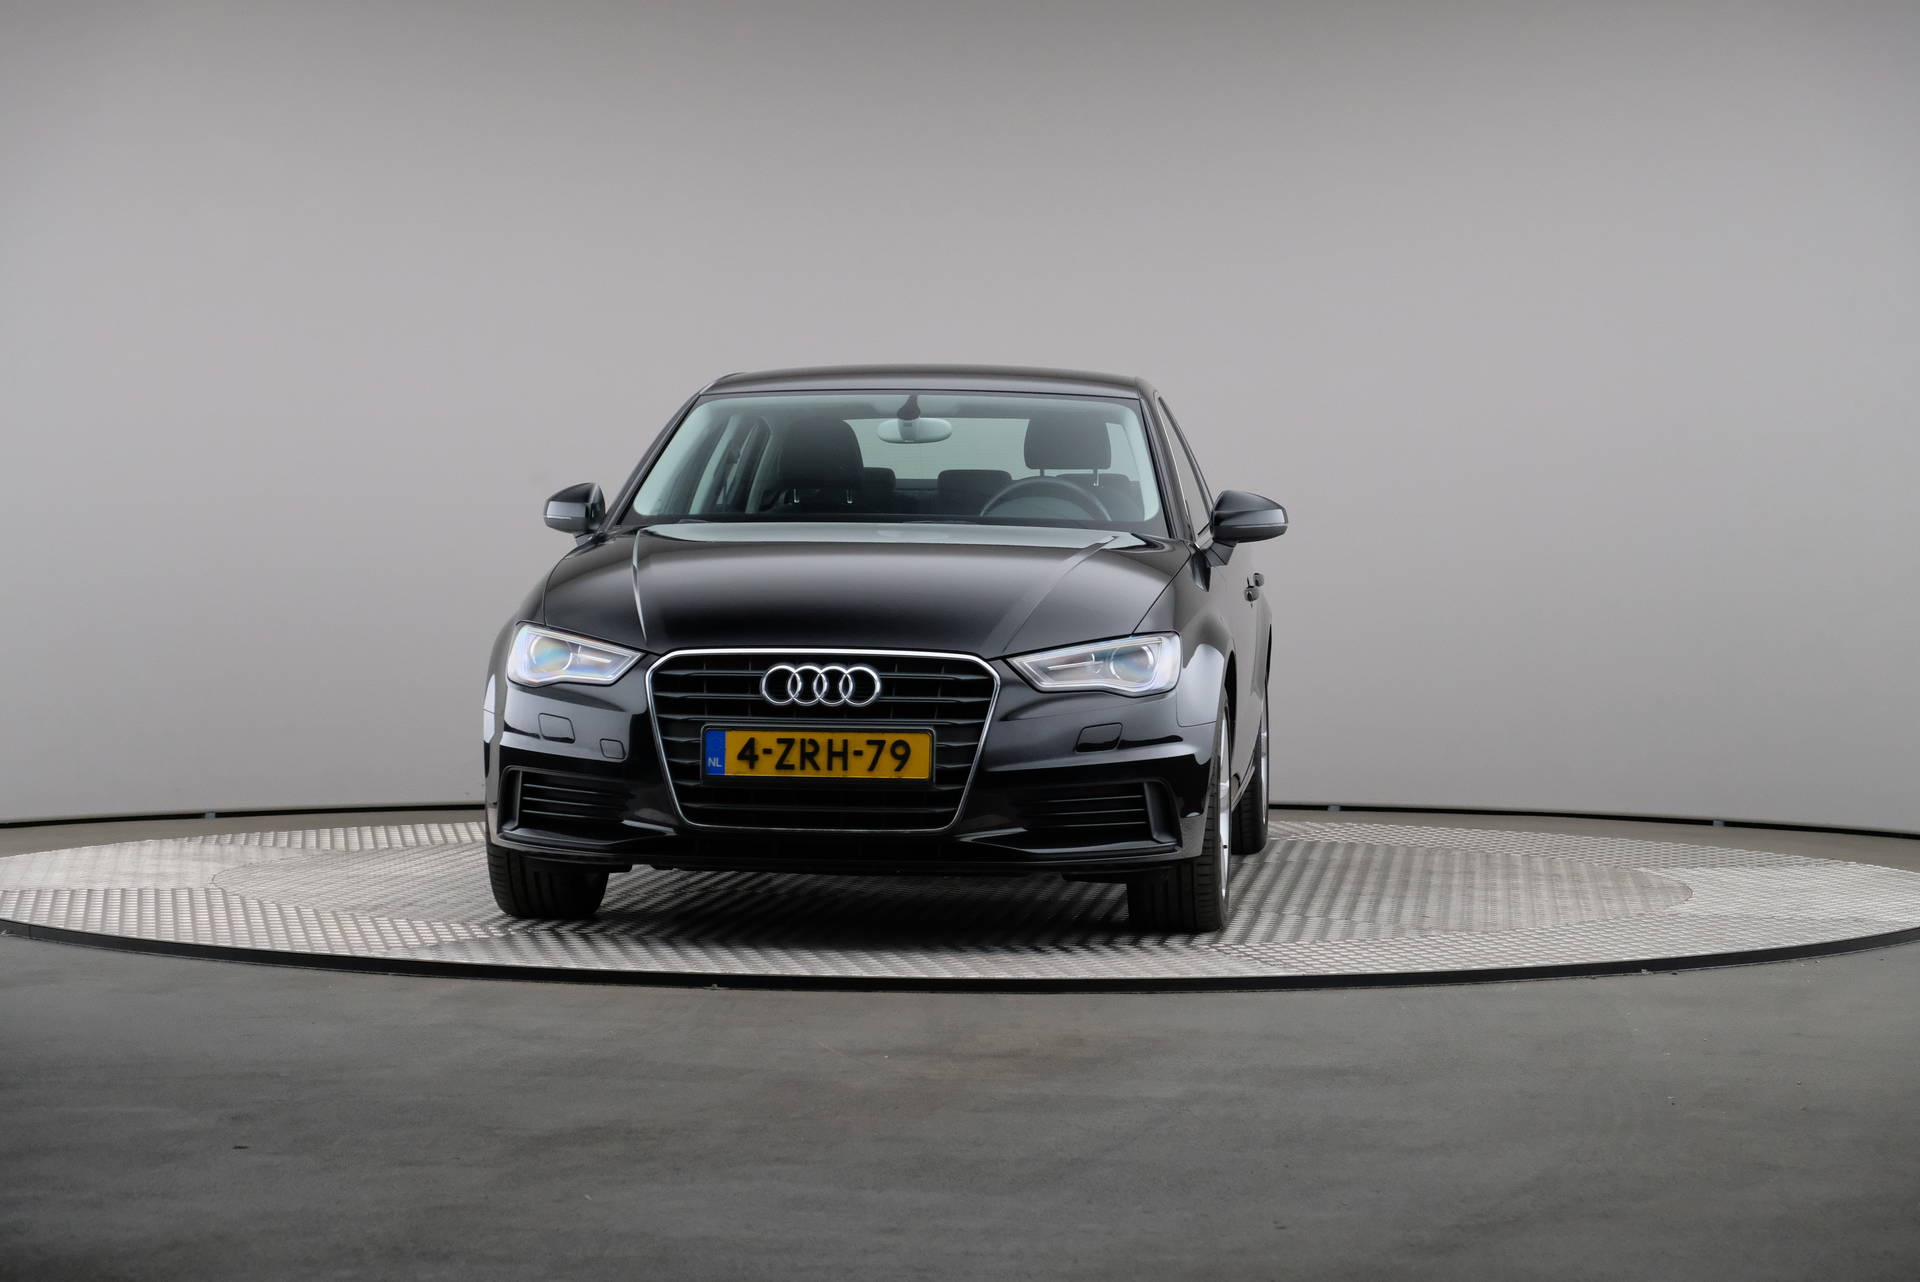 Audi A3 Limousine 1.6 TDI Attraction Pro Line Plus, Navigatie, Xenon, 360-image33